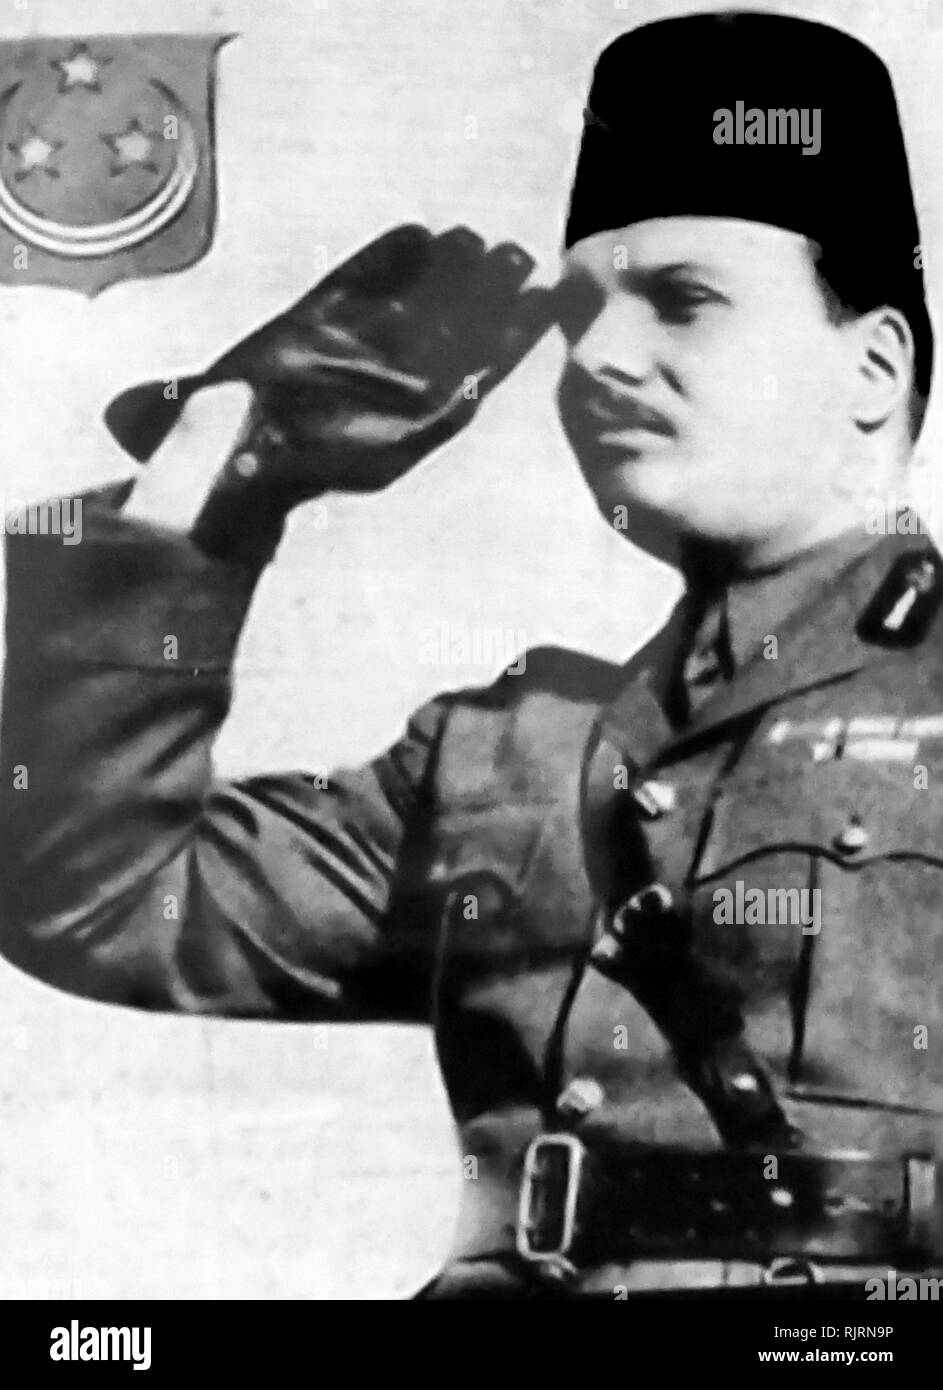 Farouk I (1920 - 1965), King of Egypt and the Sudan, succeeding his father, Fuad I, in 1936. He was overthrown in the 1952 military coup d'etat and forced to abdicate in favour of his infant son, Ahmed Fuad, who succeeded him as Fuad II. He died in exile in Italy in 1965. - Stock Image